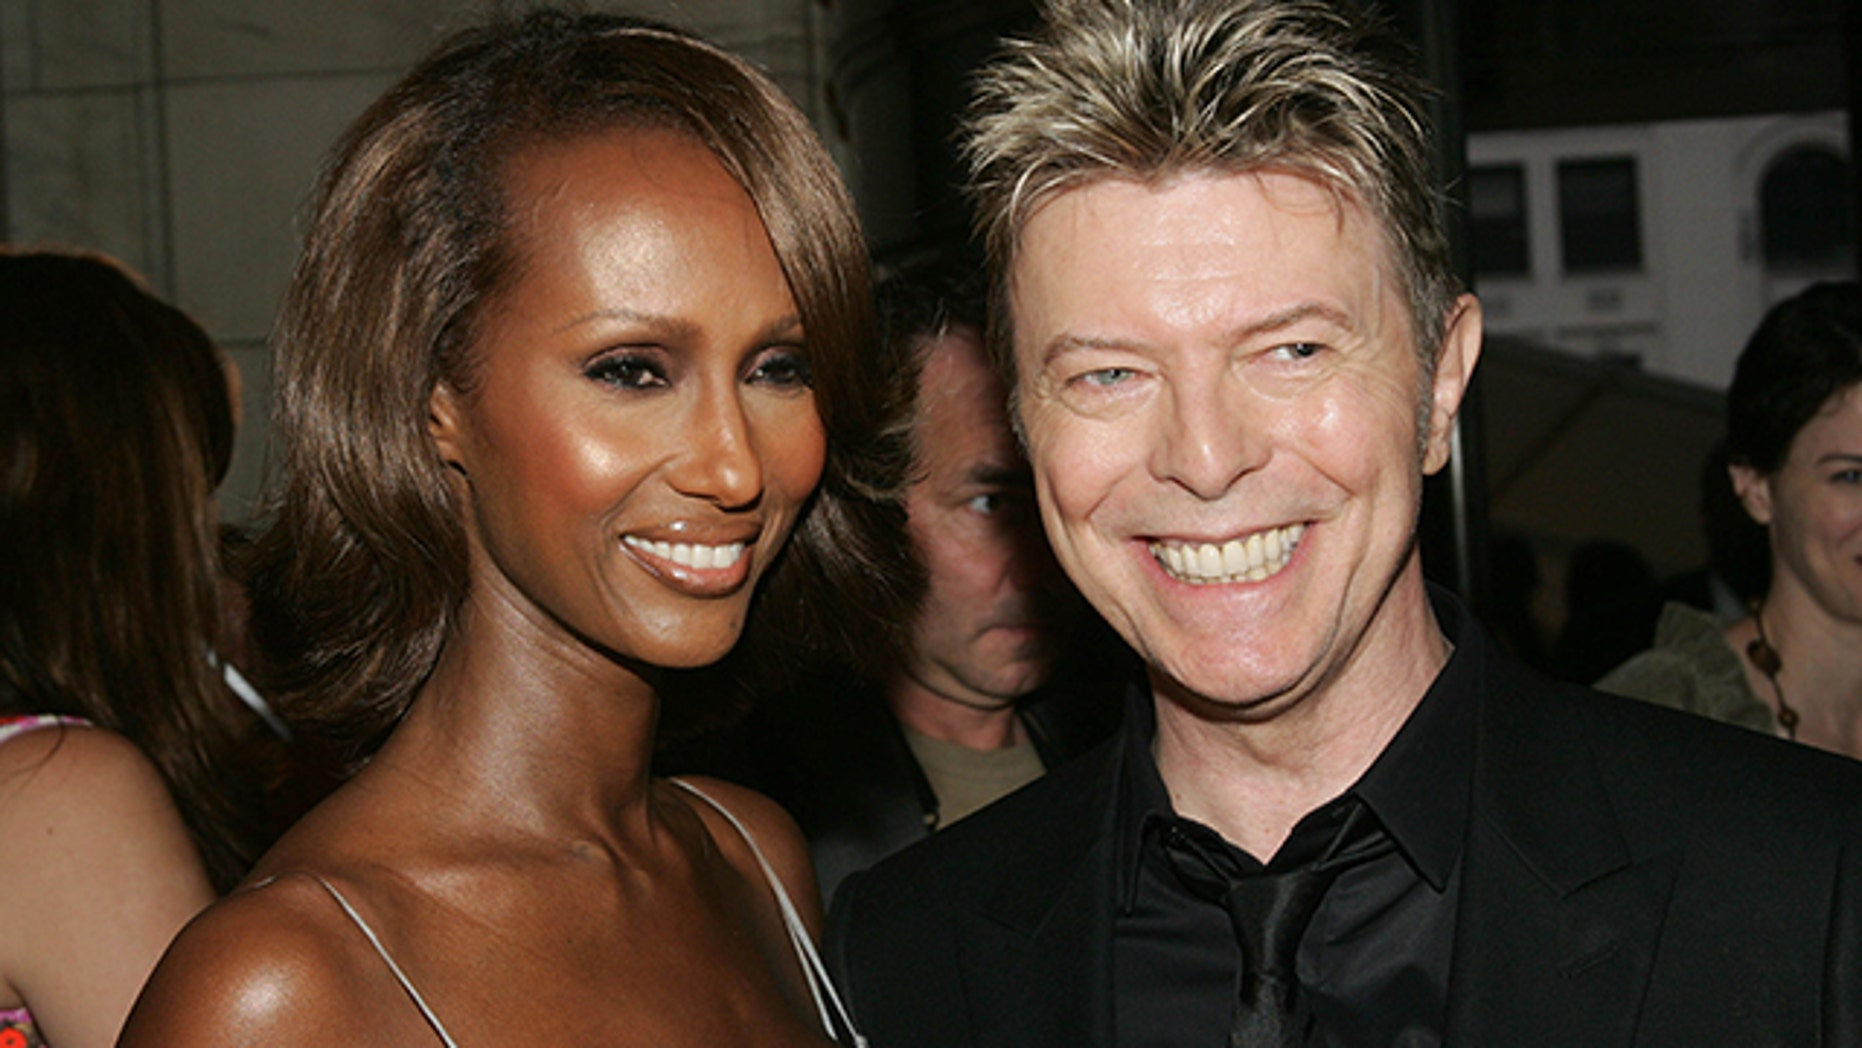 Model Iman says she refuses to remarry after the death of her husband, David Bowie.